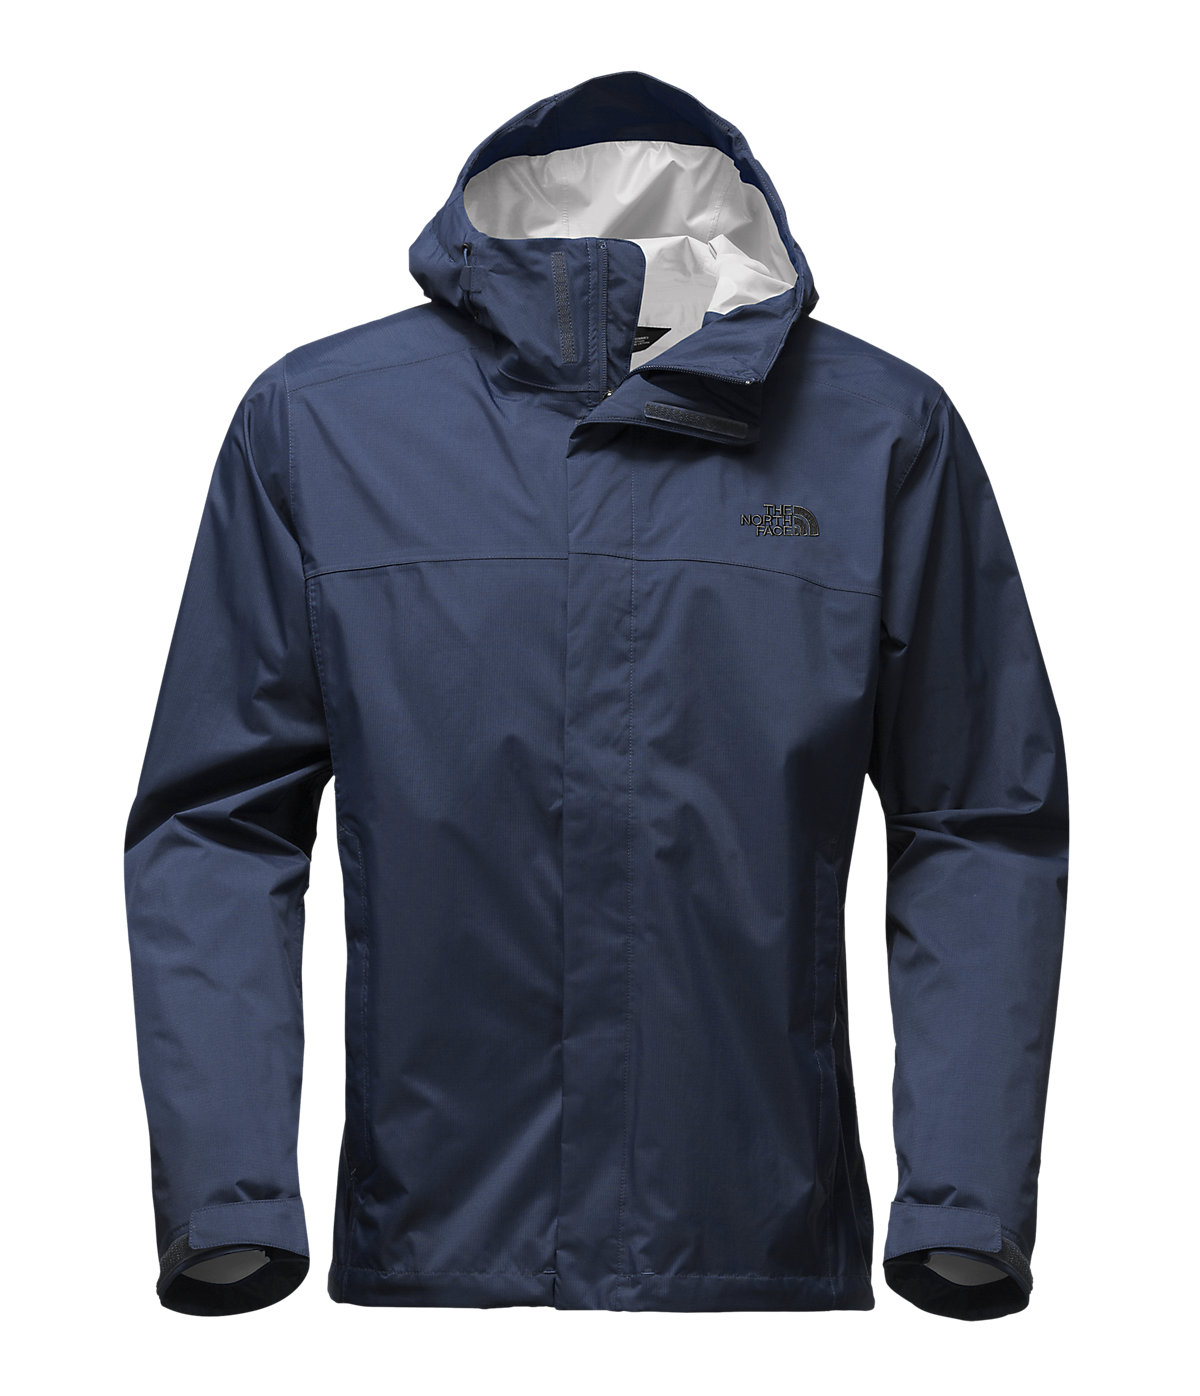 IGOGEER - NORTH Face Venture 2 Jacket